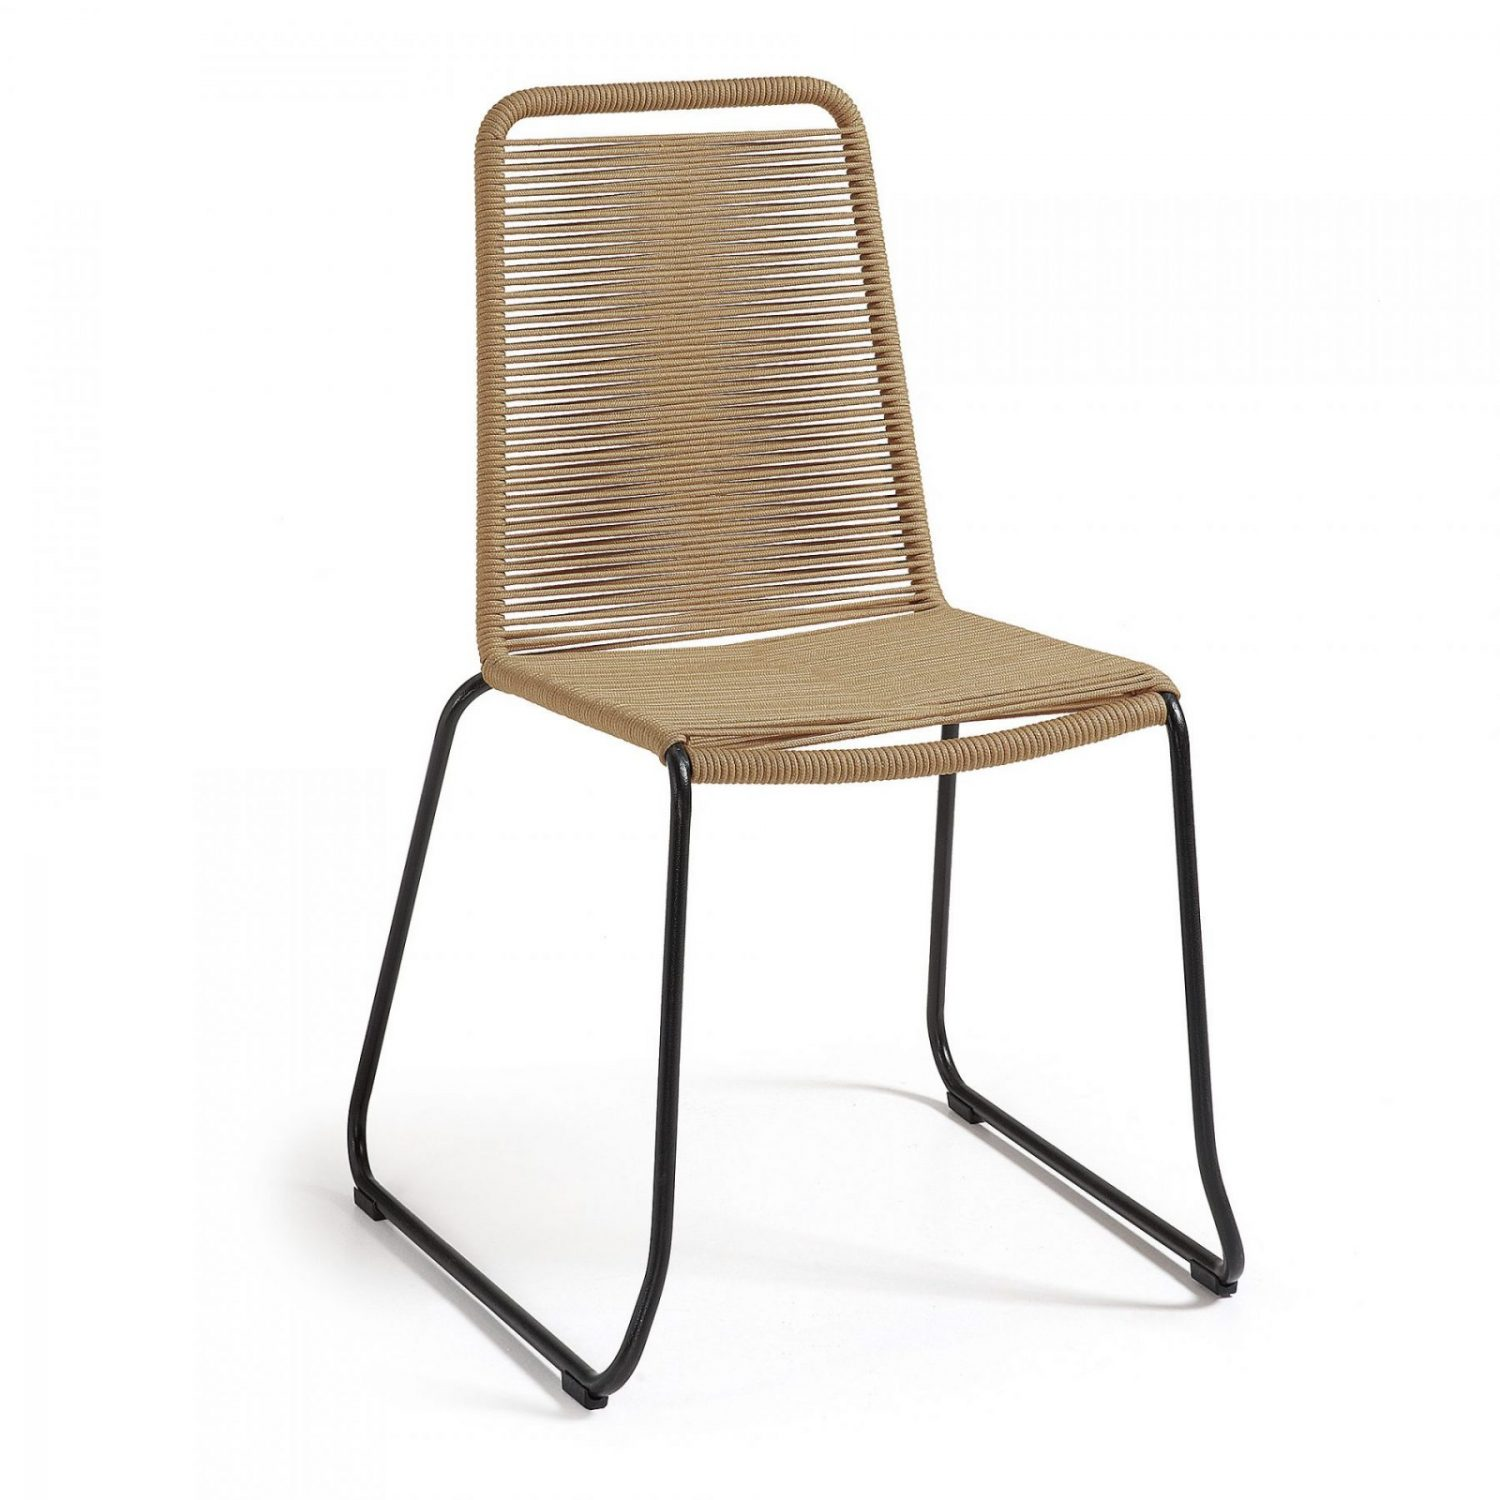 Meagan Dining Chair - Beige